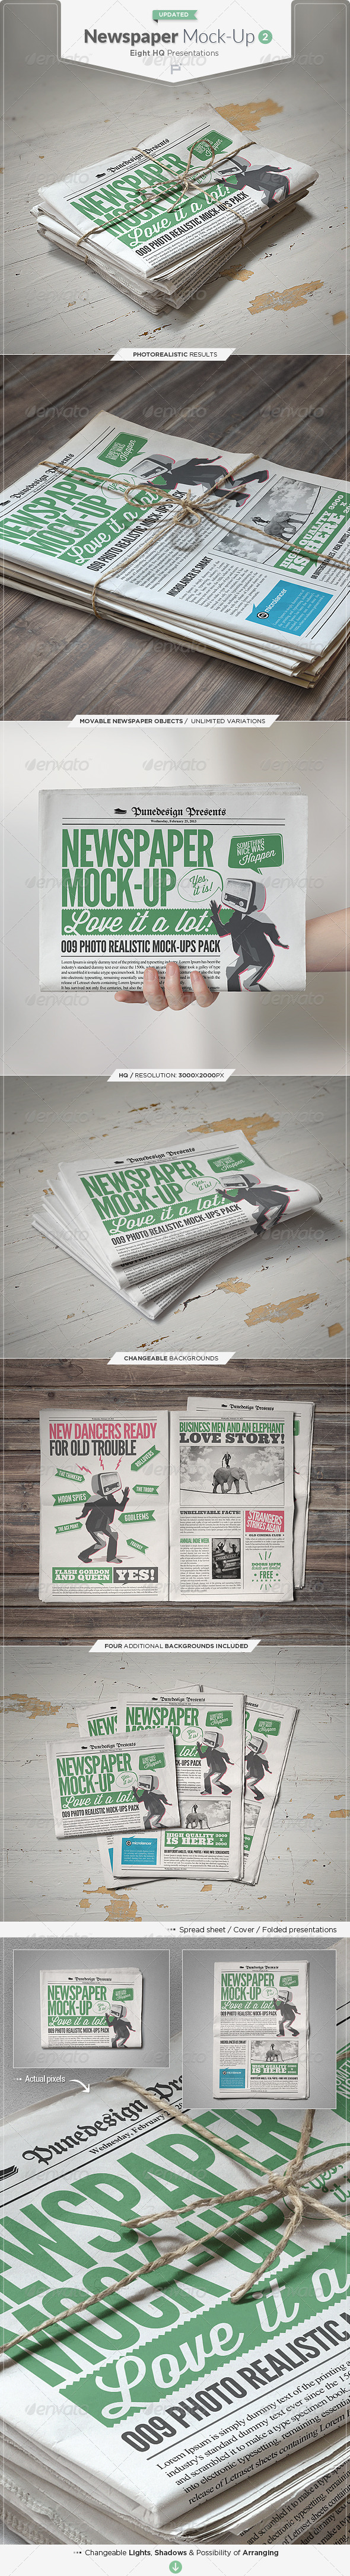 Newspaper : Newsletter Mock-Up - 2